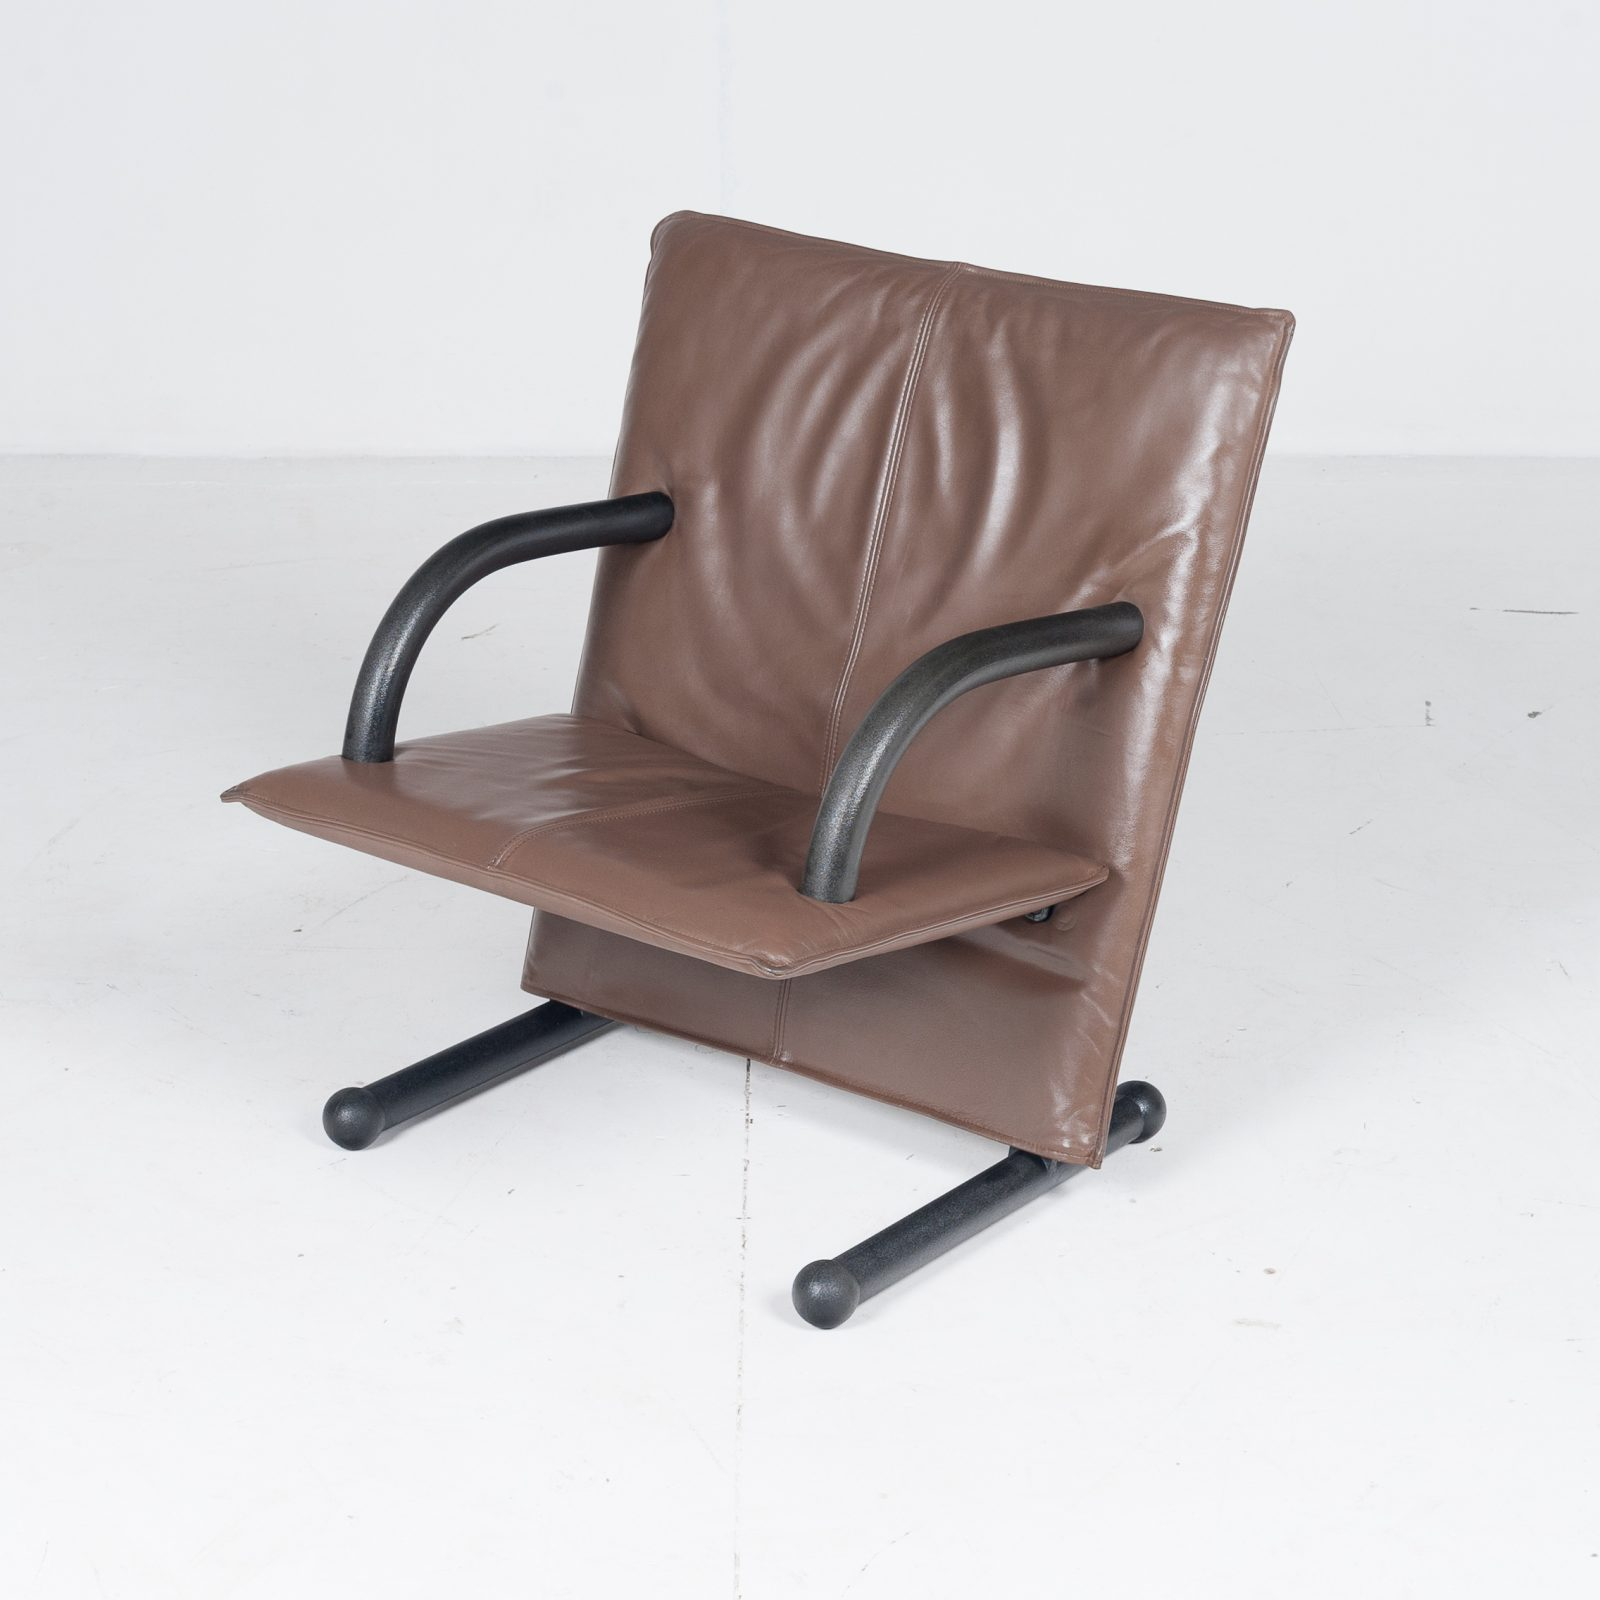 Model T Line Chair In By Burkhard Vogtherr For Arflex In Brown Leather, 1980s, Italy68